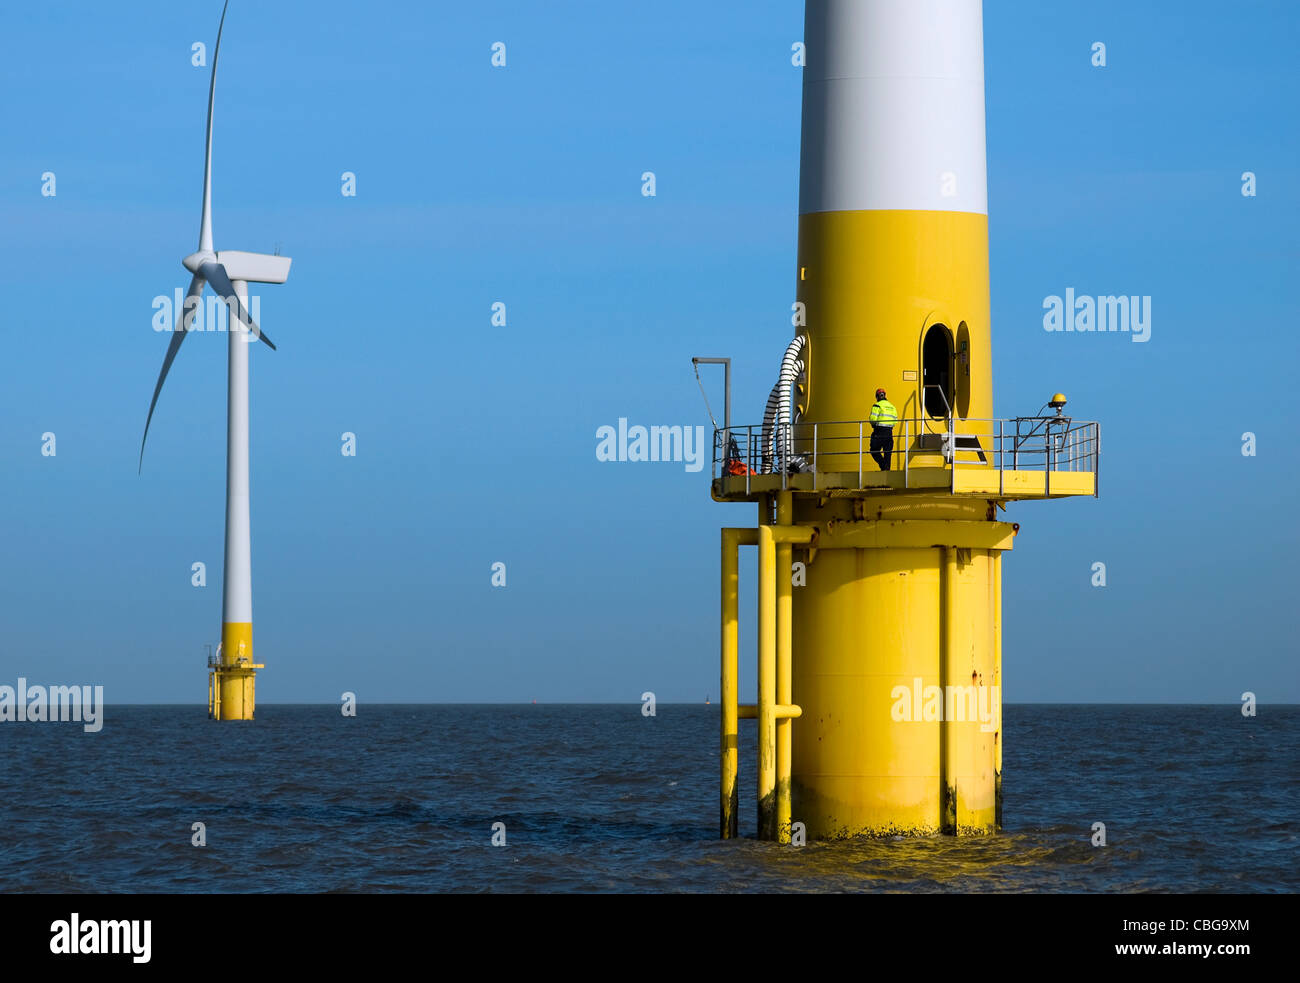 Scroby Sands Wind Farm, Great Yarmouth, Norfolk - Stock Image